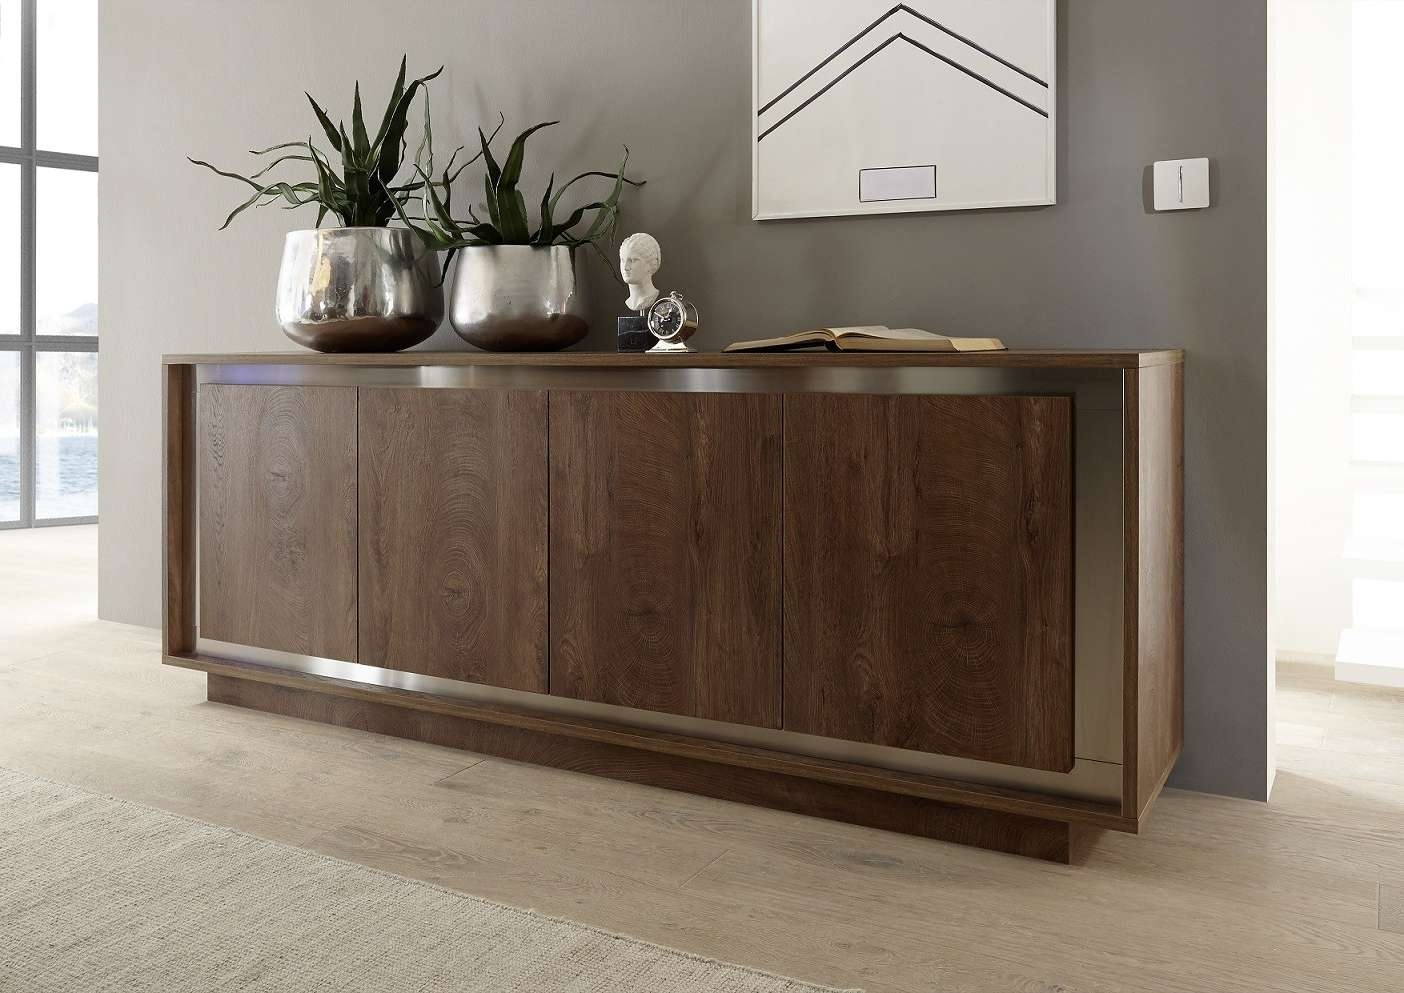 20 collection of contemporary sideboards. Black Bedroom Furniture Sets. Home Design Ideas